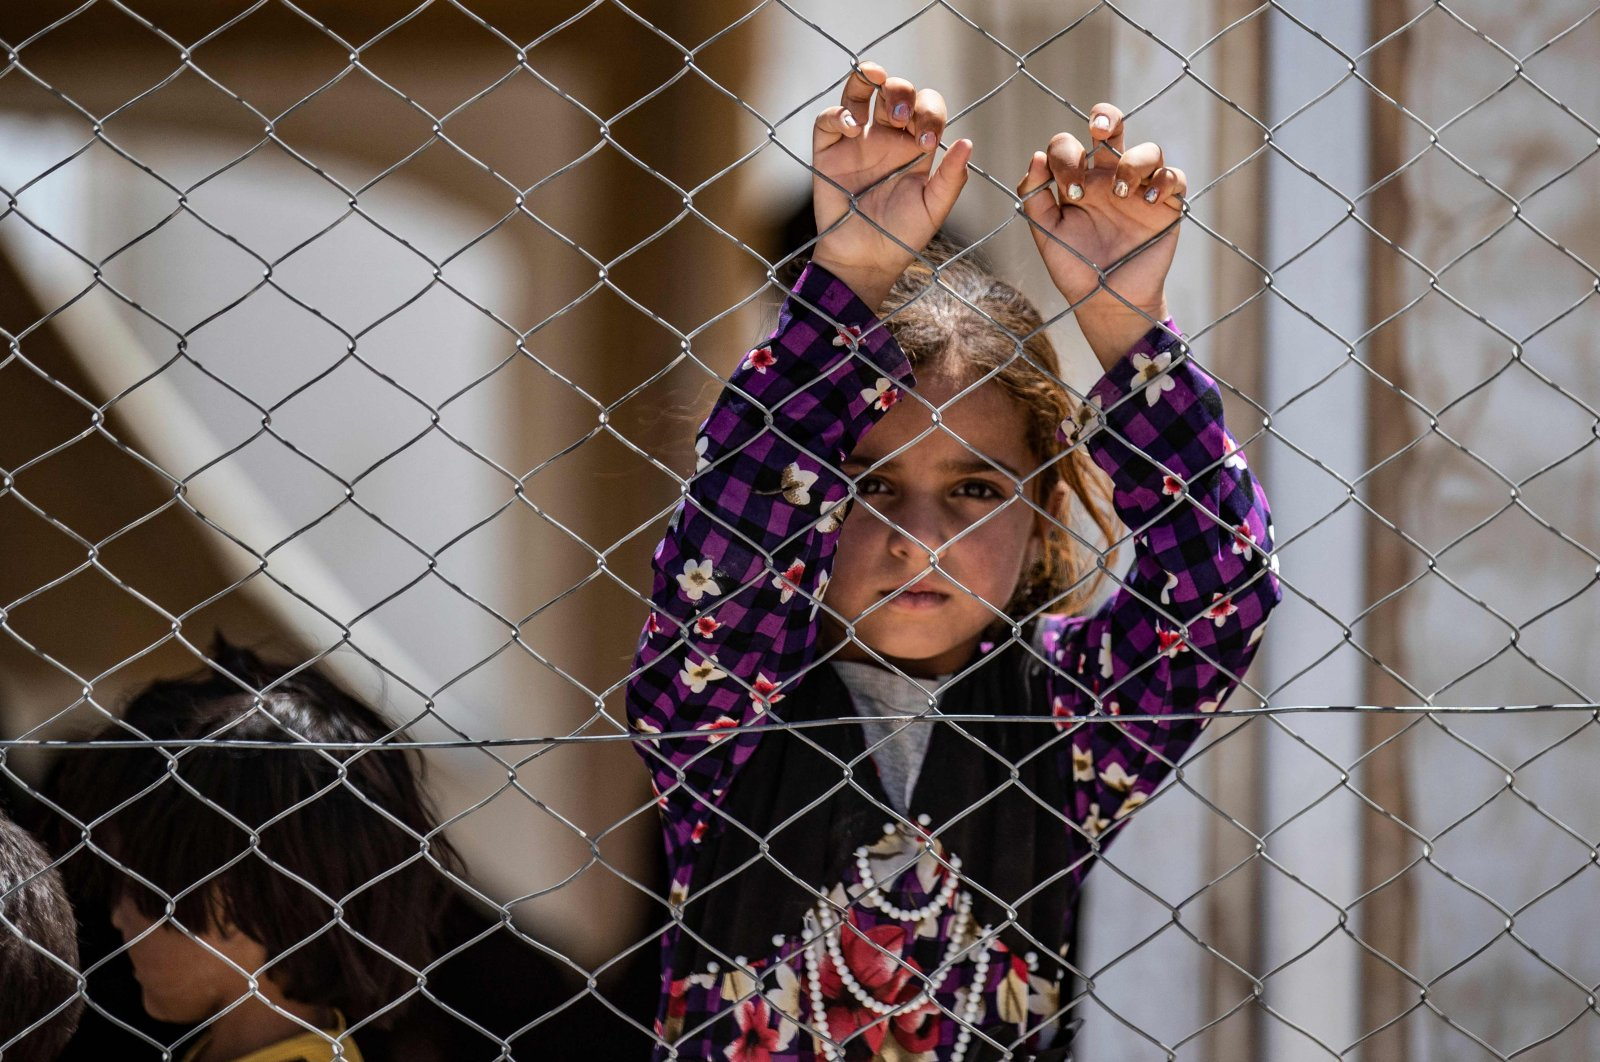 A Syrian child waits with family members inside the al-Hol camp, which holds relatives of suspected Daesh fighters in the northeastern Hasakeh governorate, Syria, July 15, 2021. (AFP Photo)